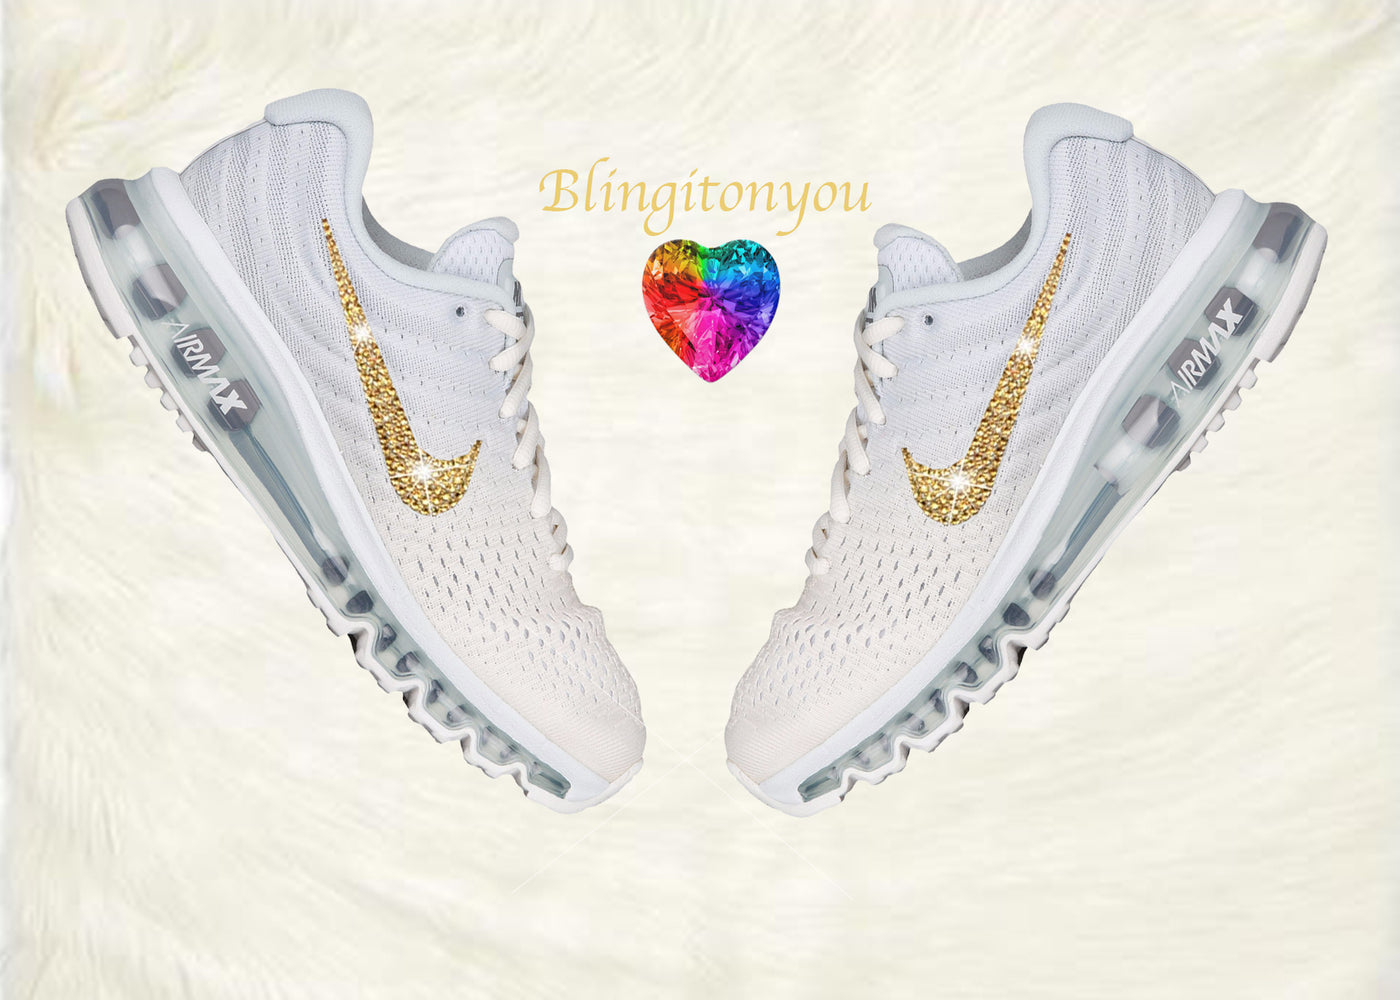 buy popular a1c44 e1914 Swarovski Nike Air Max 2017 Women s Running Shoe White with Gold Swarovski  Crystals Brand New In ...